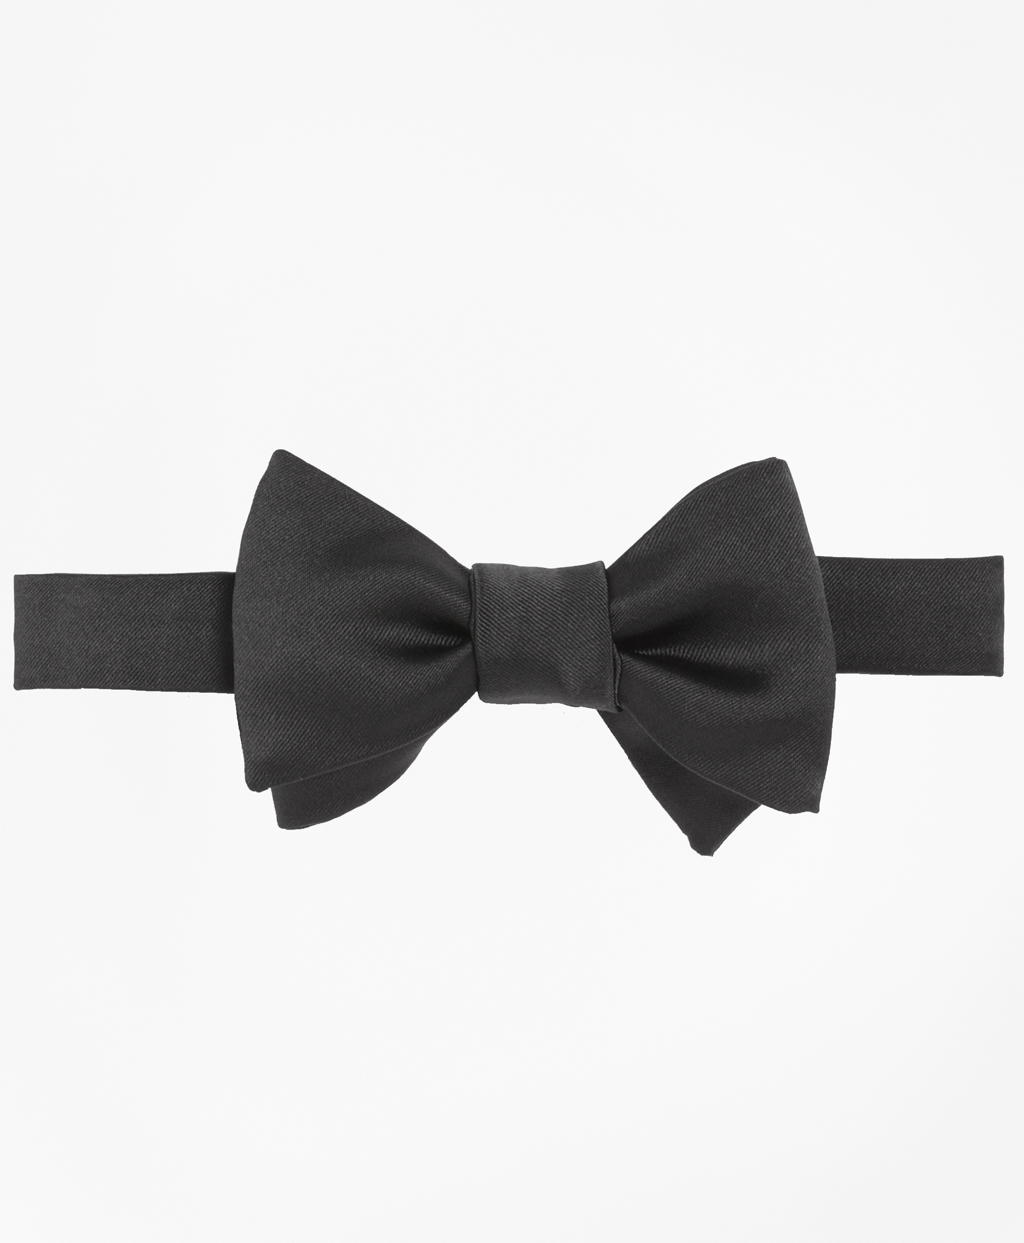 New Vintage Tuxedos, Tailcoats, Morning Suits, Dinner Jackets Brooks Brothers Mens Butterfly Self-Tie Bow Tie $60.00 AT vintagedancer.com